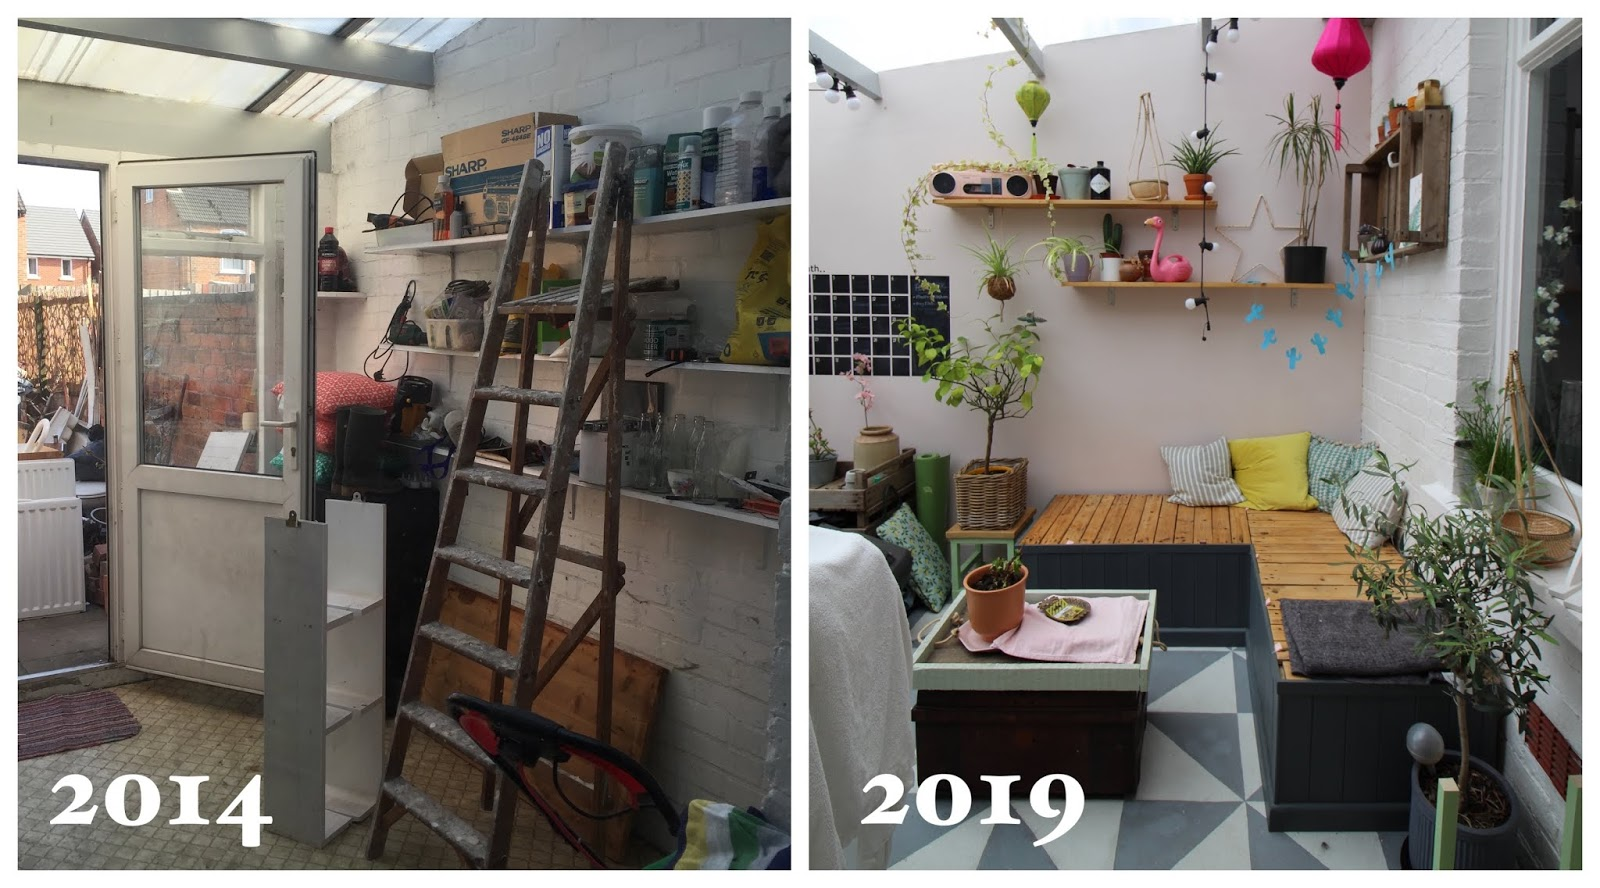 conservatory renovation before and after 5 years